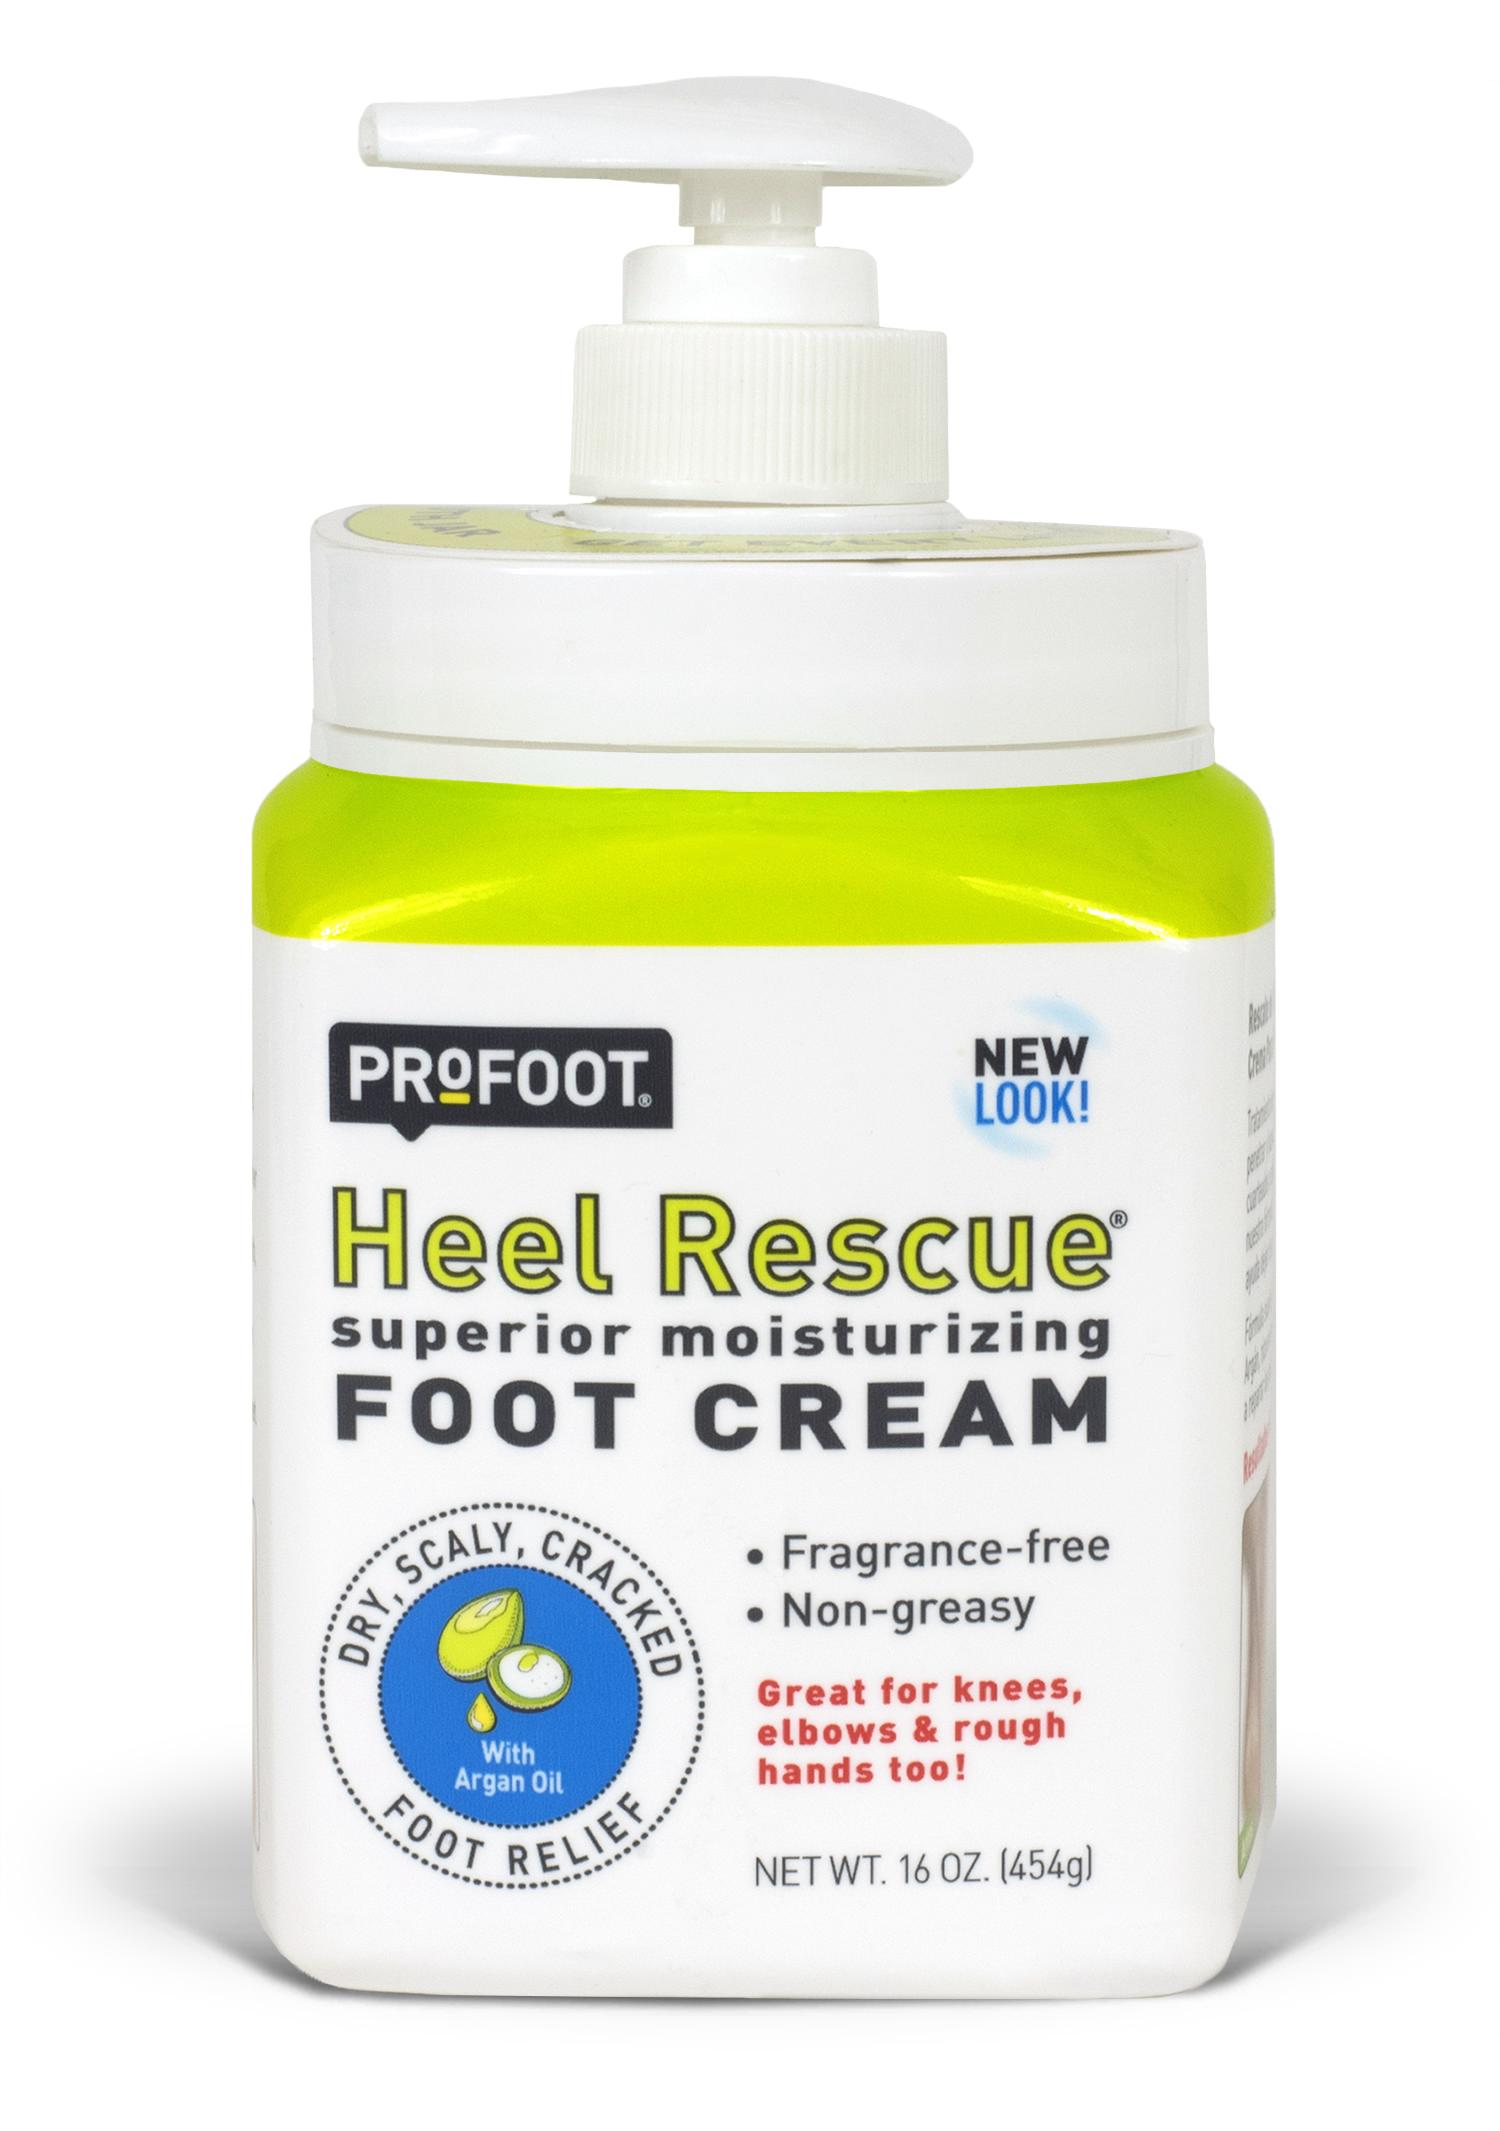 PROFOOT Heel Rescue Foot Cream